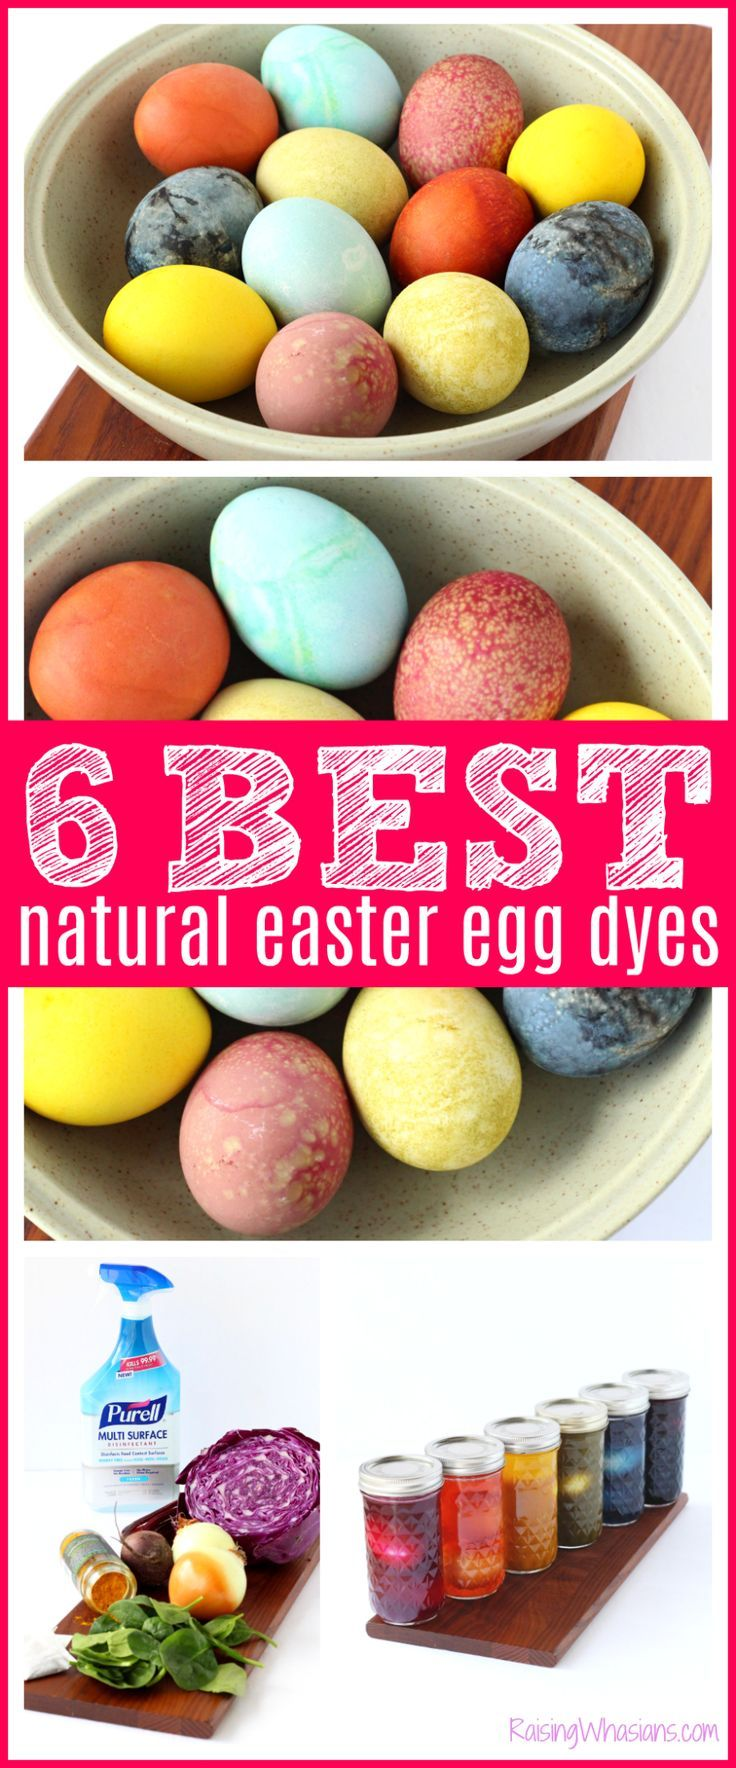 6 EASY Natural Easter Egg Dyes for the Most Vibrant Colors | Best at home dyes for your Easter eggs using everyday home items (AD)